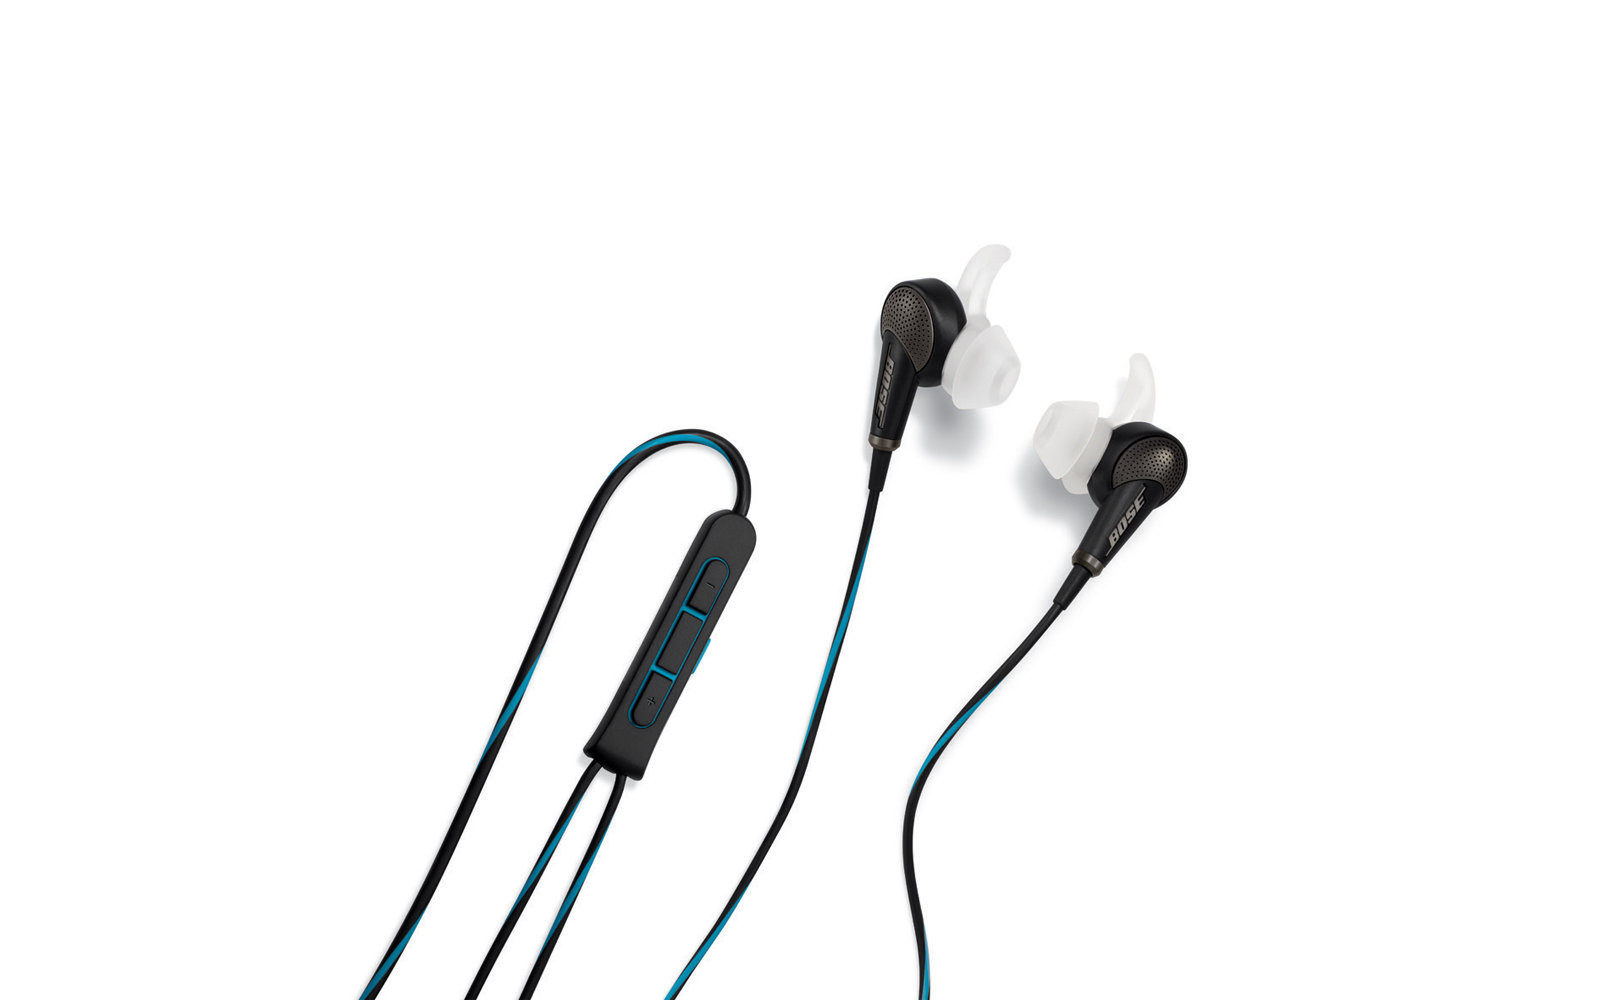 Bose QuietComfort 20 Acoustic Headphones